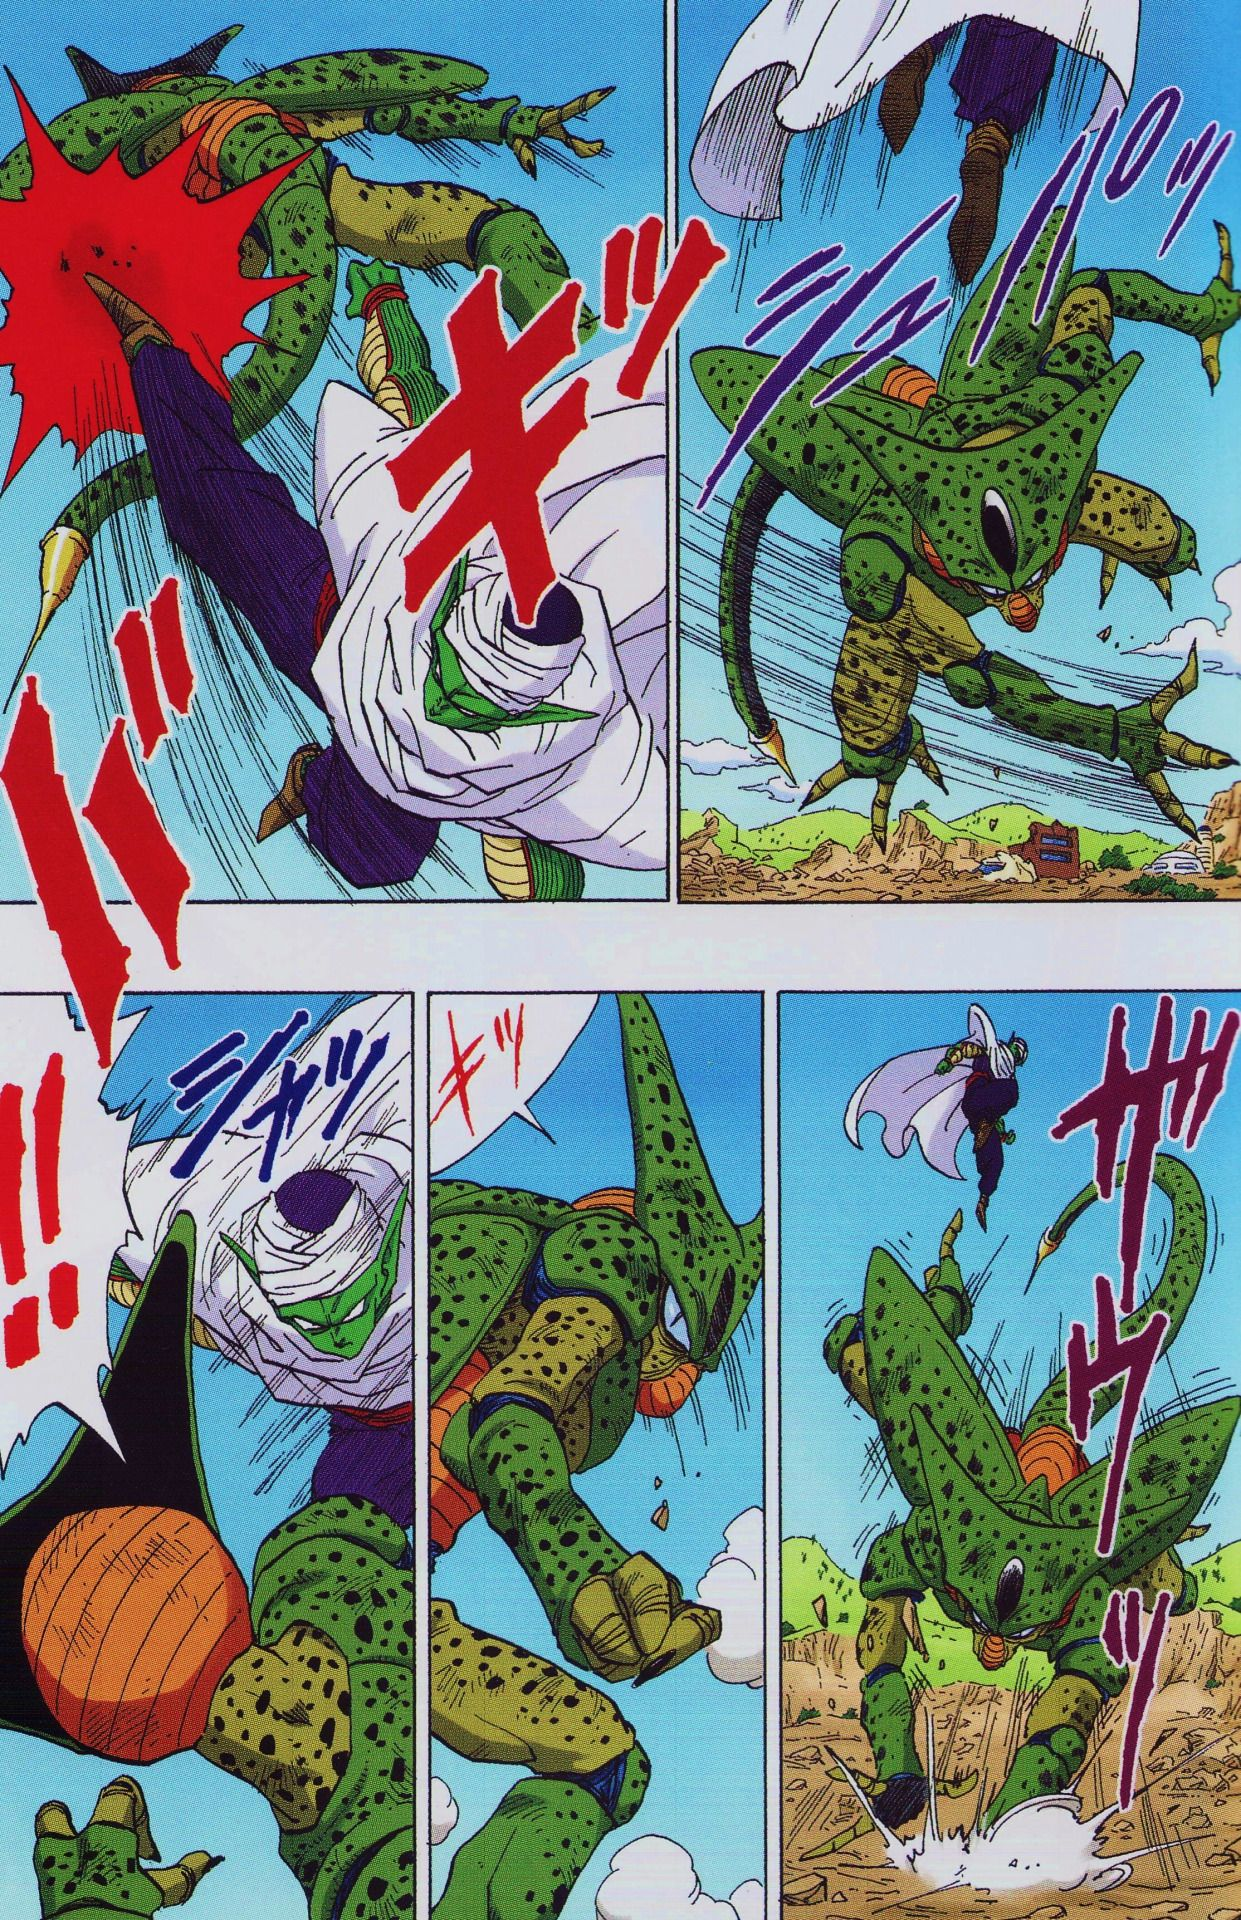 Piccolo Vs Cell First Formillustrated By Akira Toriyamapublished By